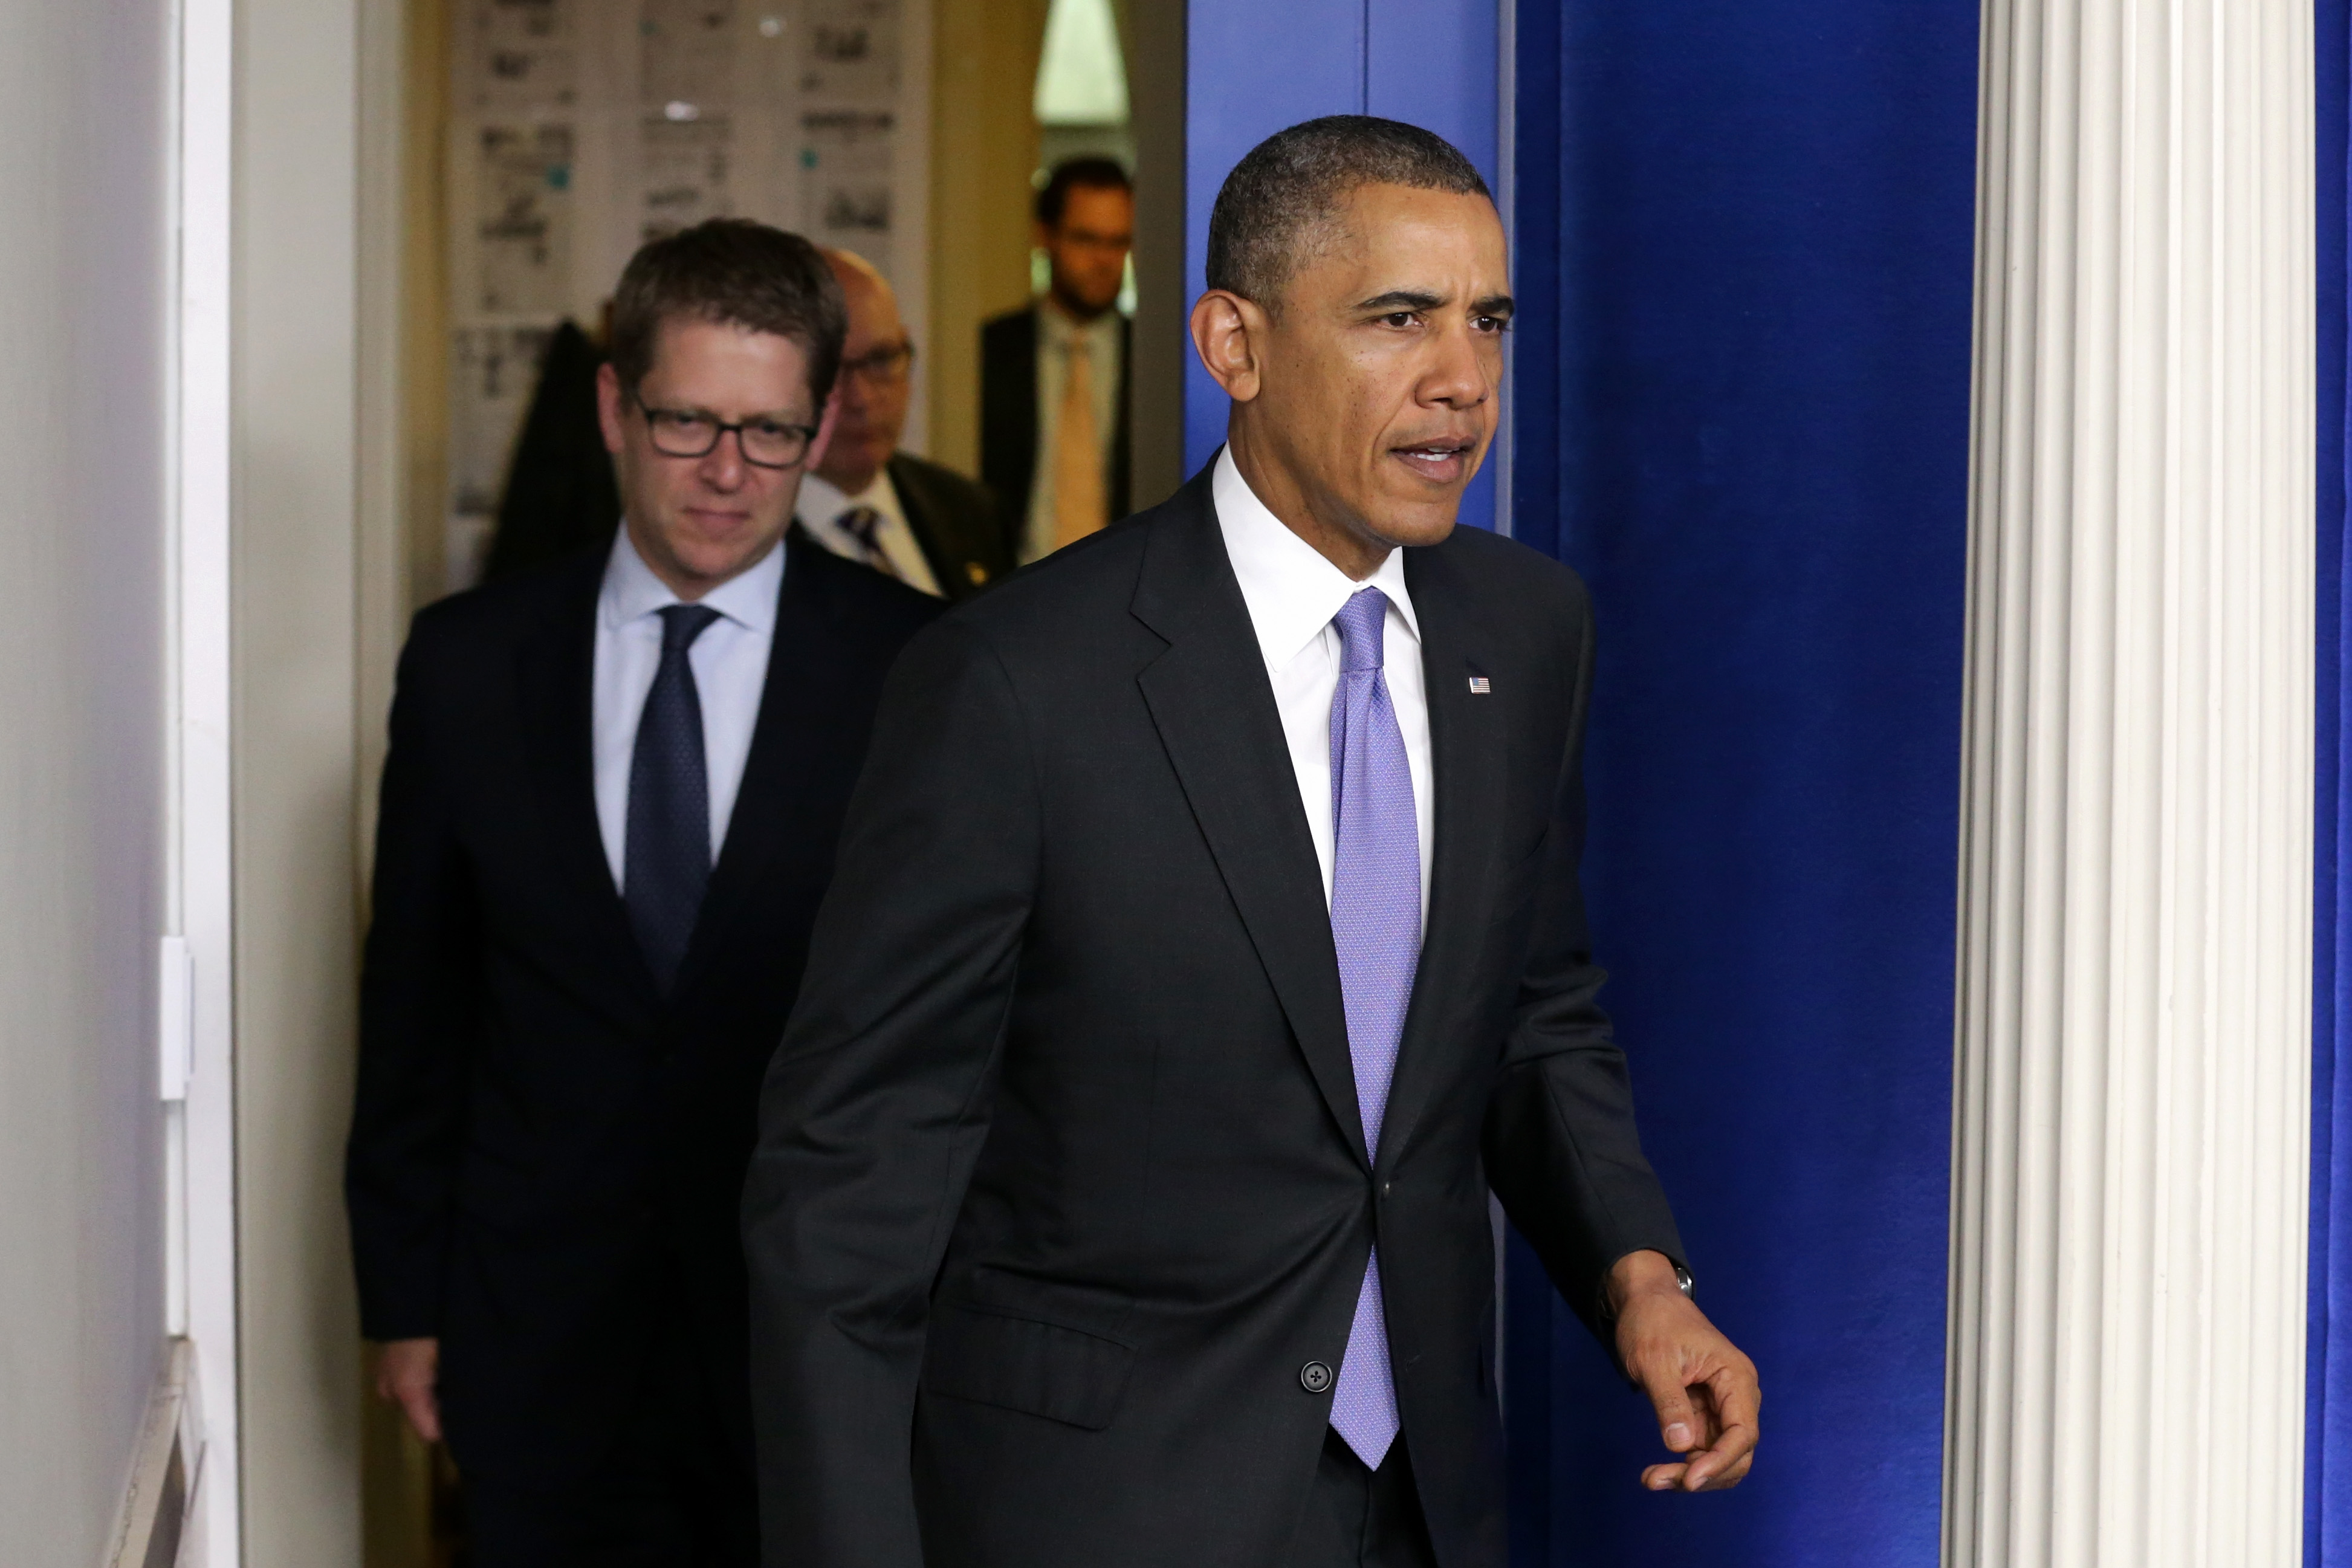 U.S. President Barack Obama (R) arrives to make a statement to the news media about the recent problems at the Veterans Affairs Department with White House Press Secretary Jay Carney in the Brady Press Briefing Room at the White House May 21, 2014 in Washington, DC.